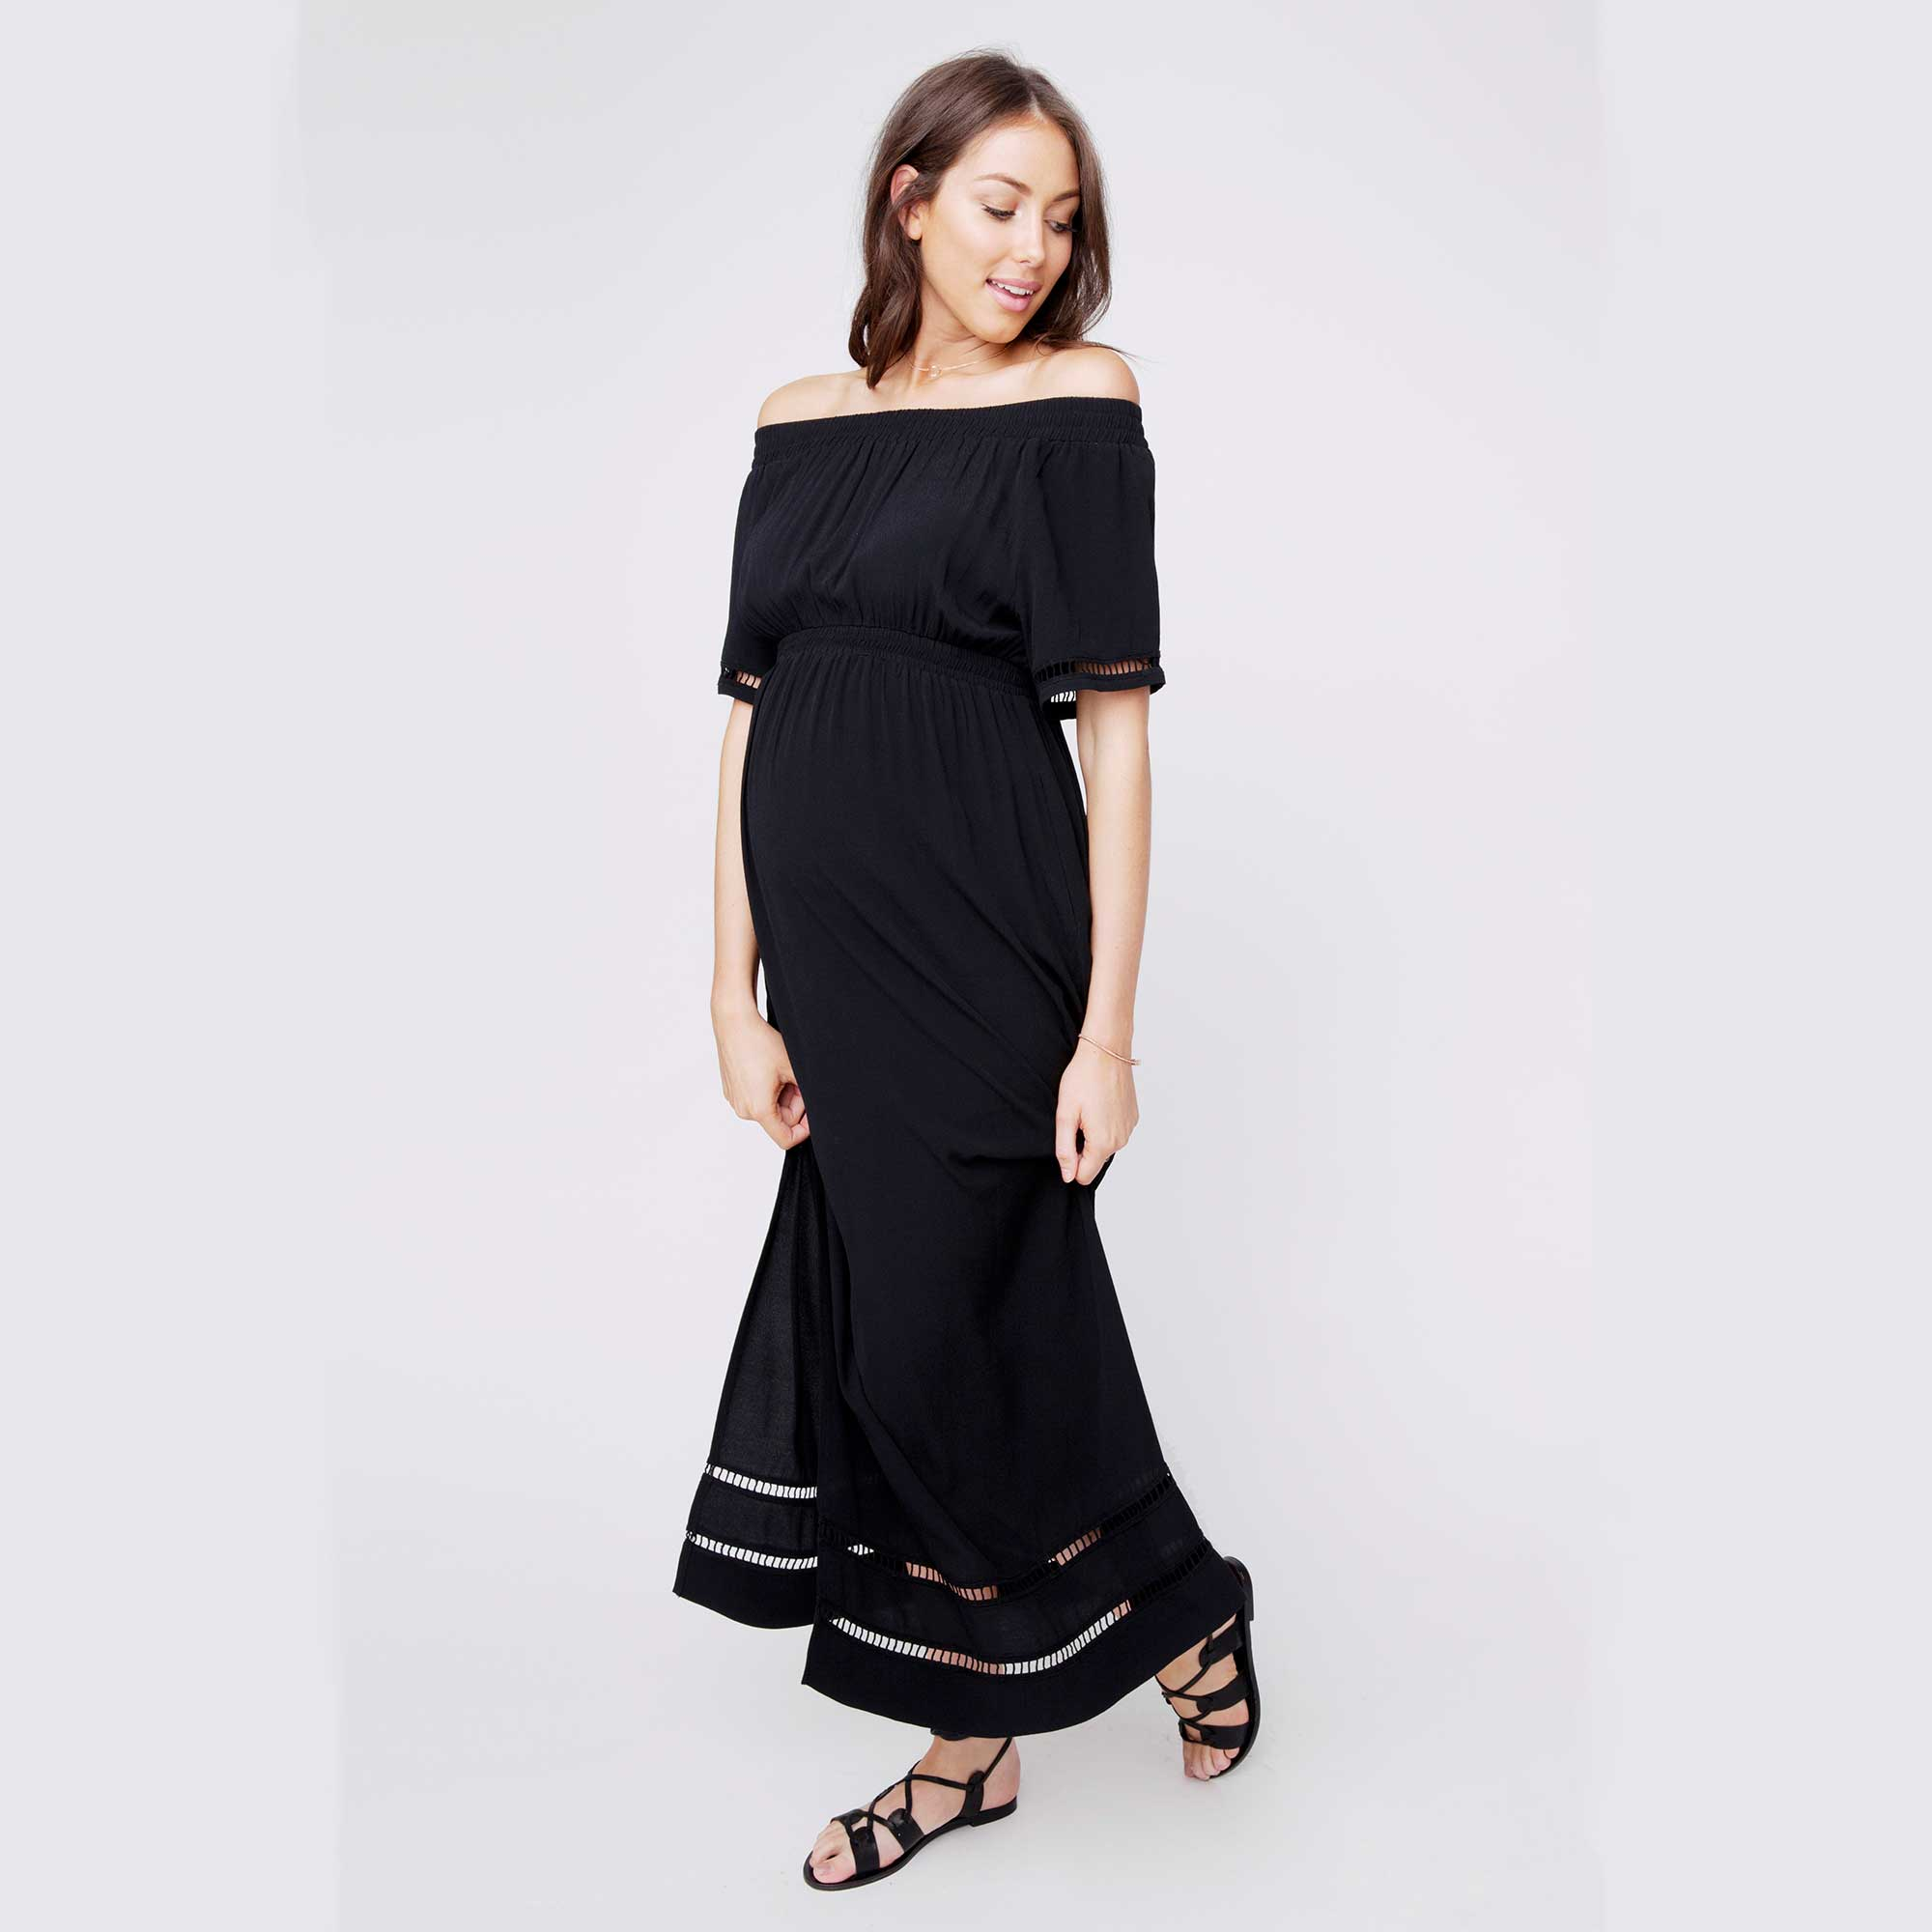 286897a474a Details about NEW Ripe Maternity Cold Shoulder Maxi Pregnancy Dress